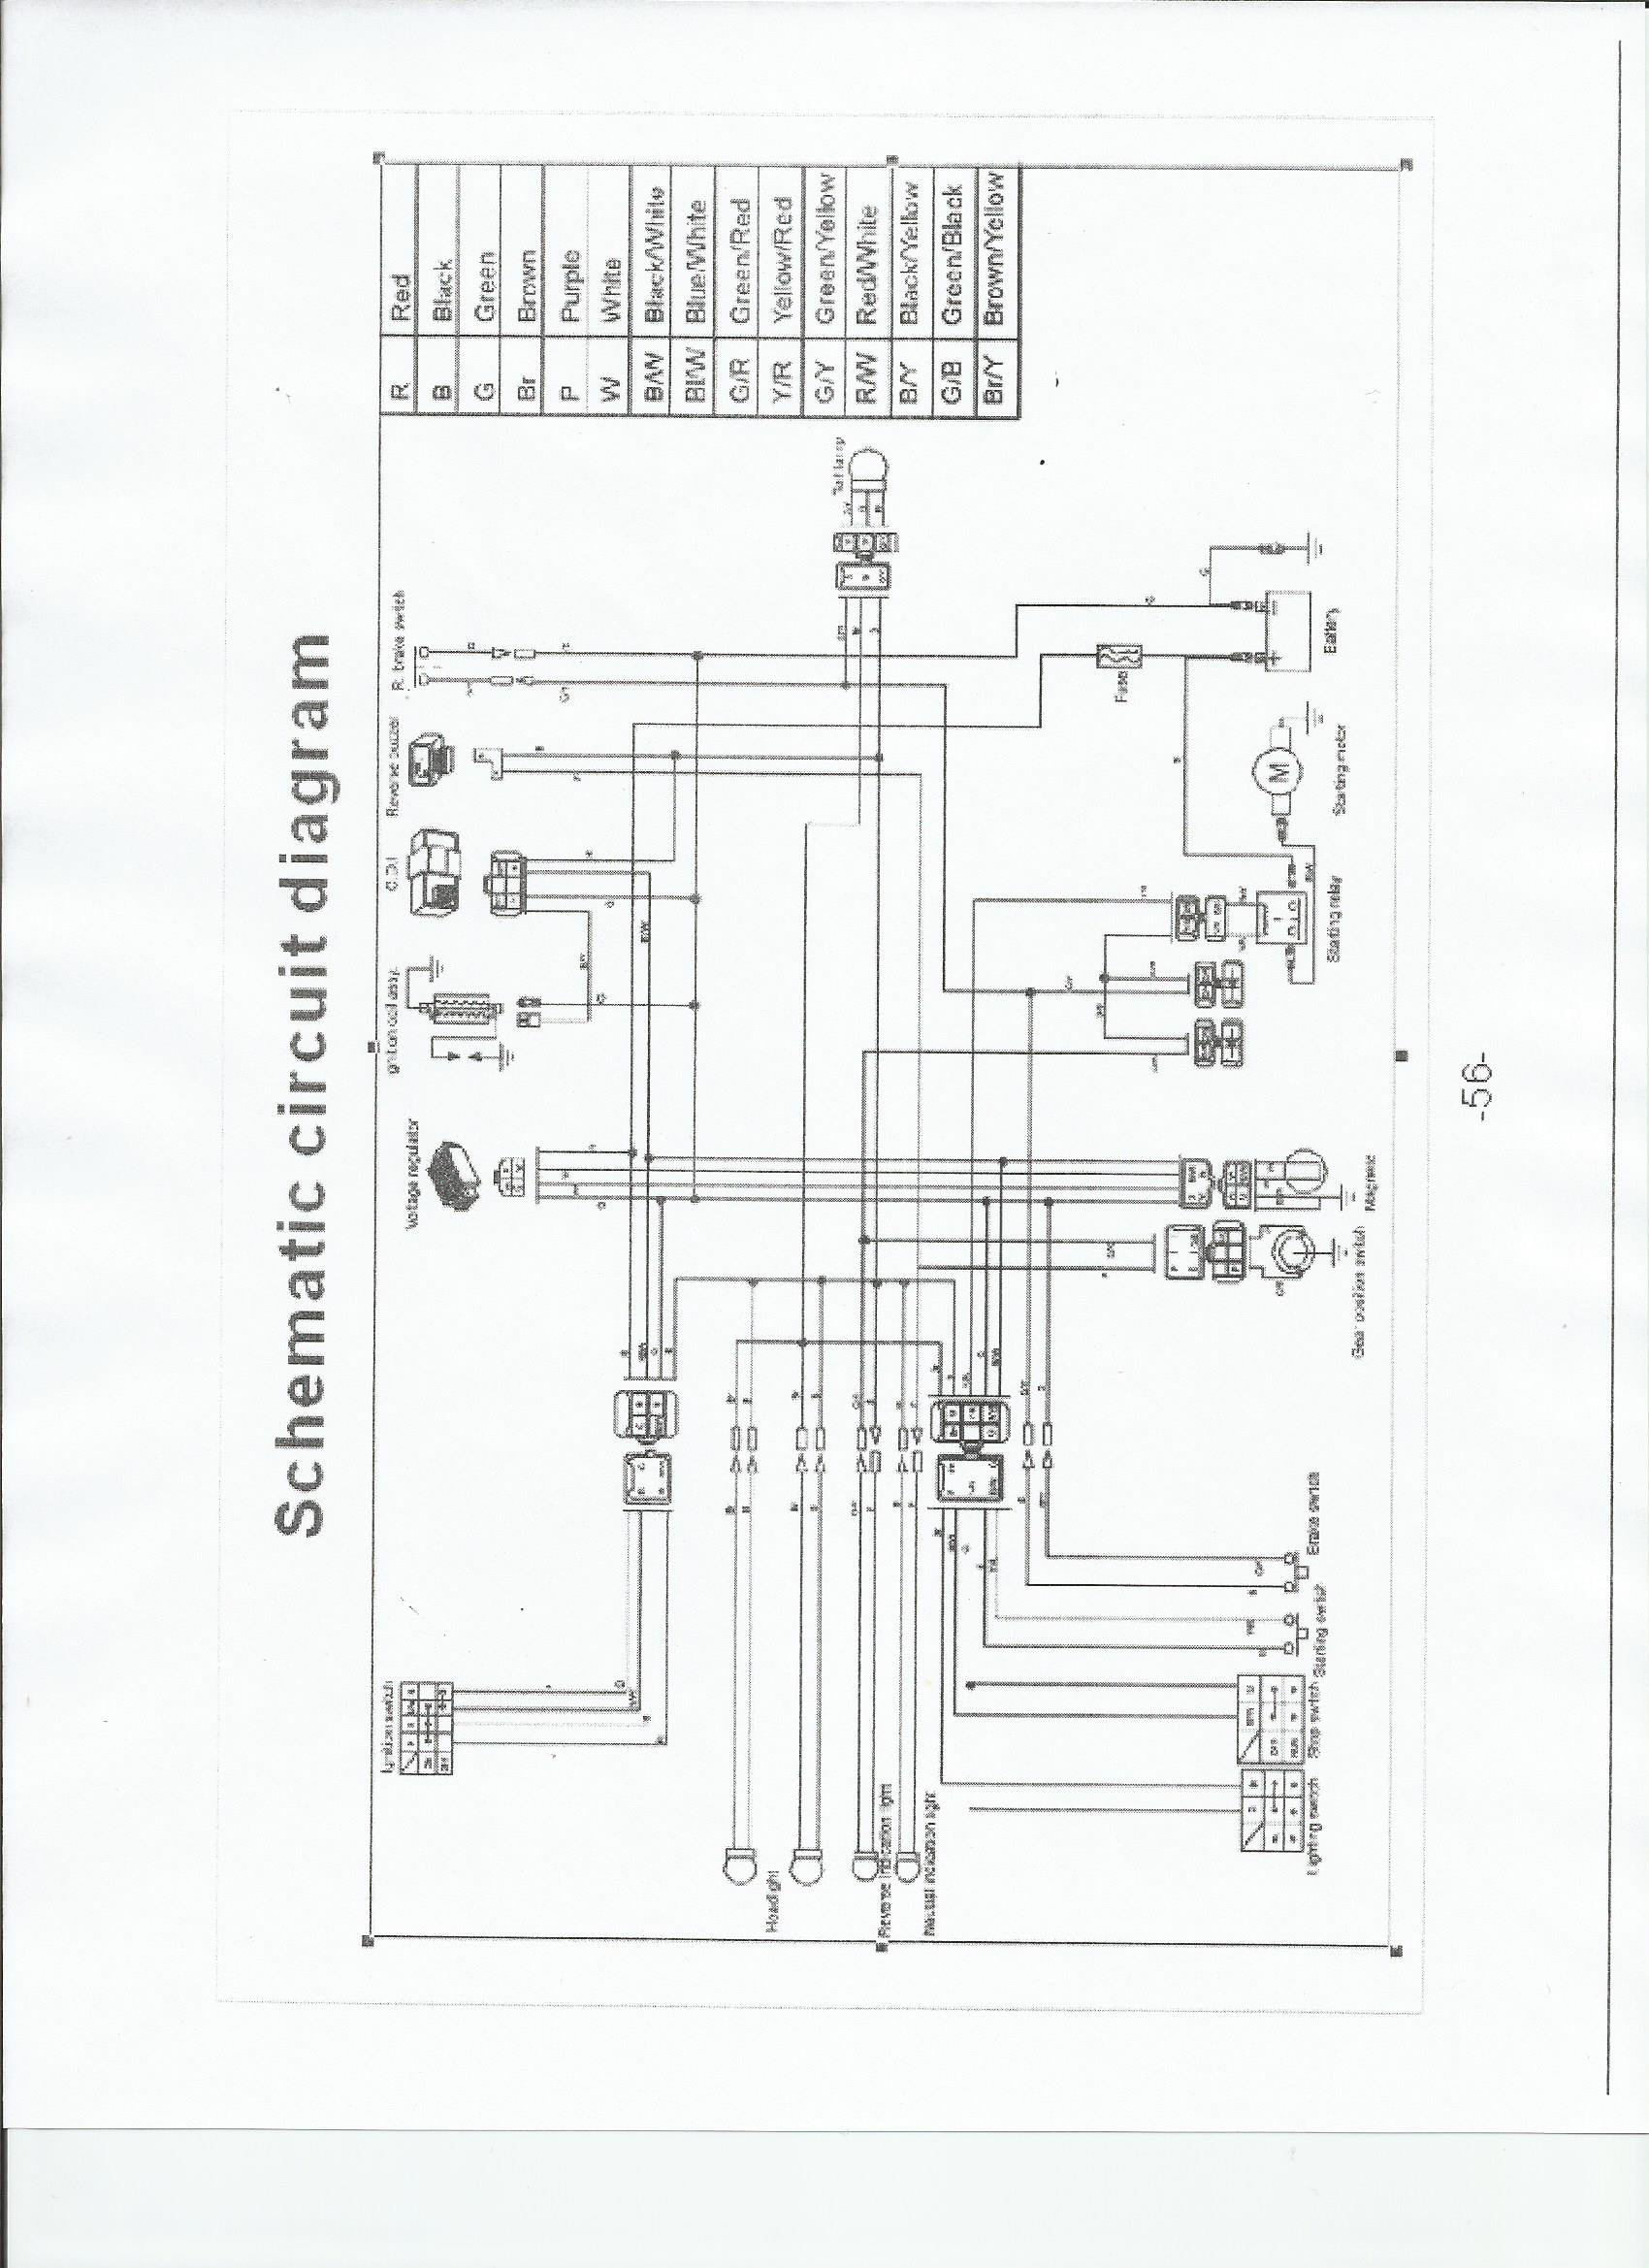 2011 yamaha warrior wiring diagram with Suzuki Dirt Bike Wiring Diagram Free Picture on Fuel Injector Daisy Chain Wiring Diagram also Prado 150 Wiring Diagram in addition Yamaha Grizzly 350 Wiring Diagram additionally 280993 2004 Kasuma 110 Atv No Spark Plz Help together with Wiring Diagram For Yamaha Royal Star Venture.